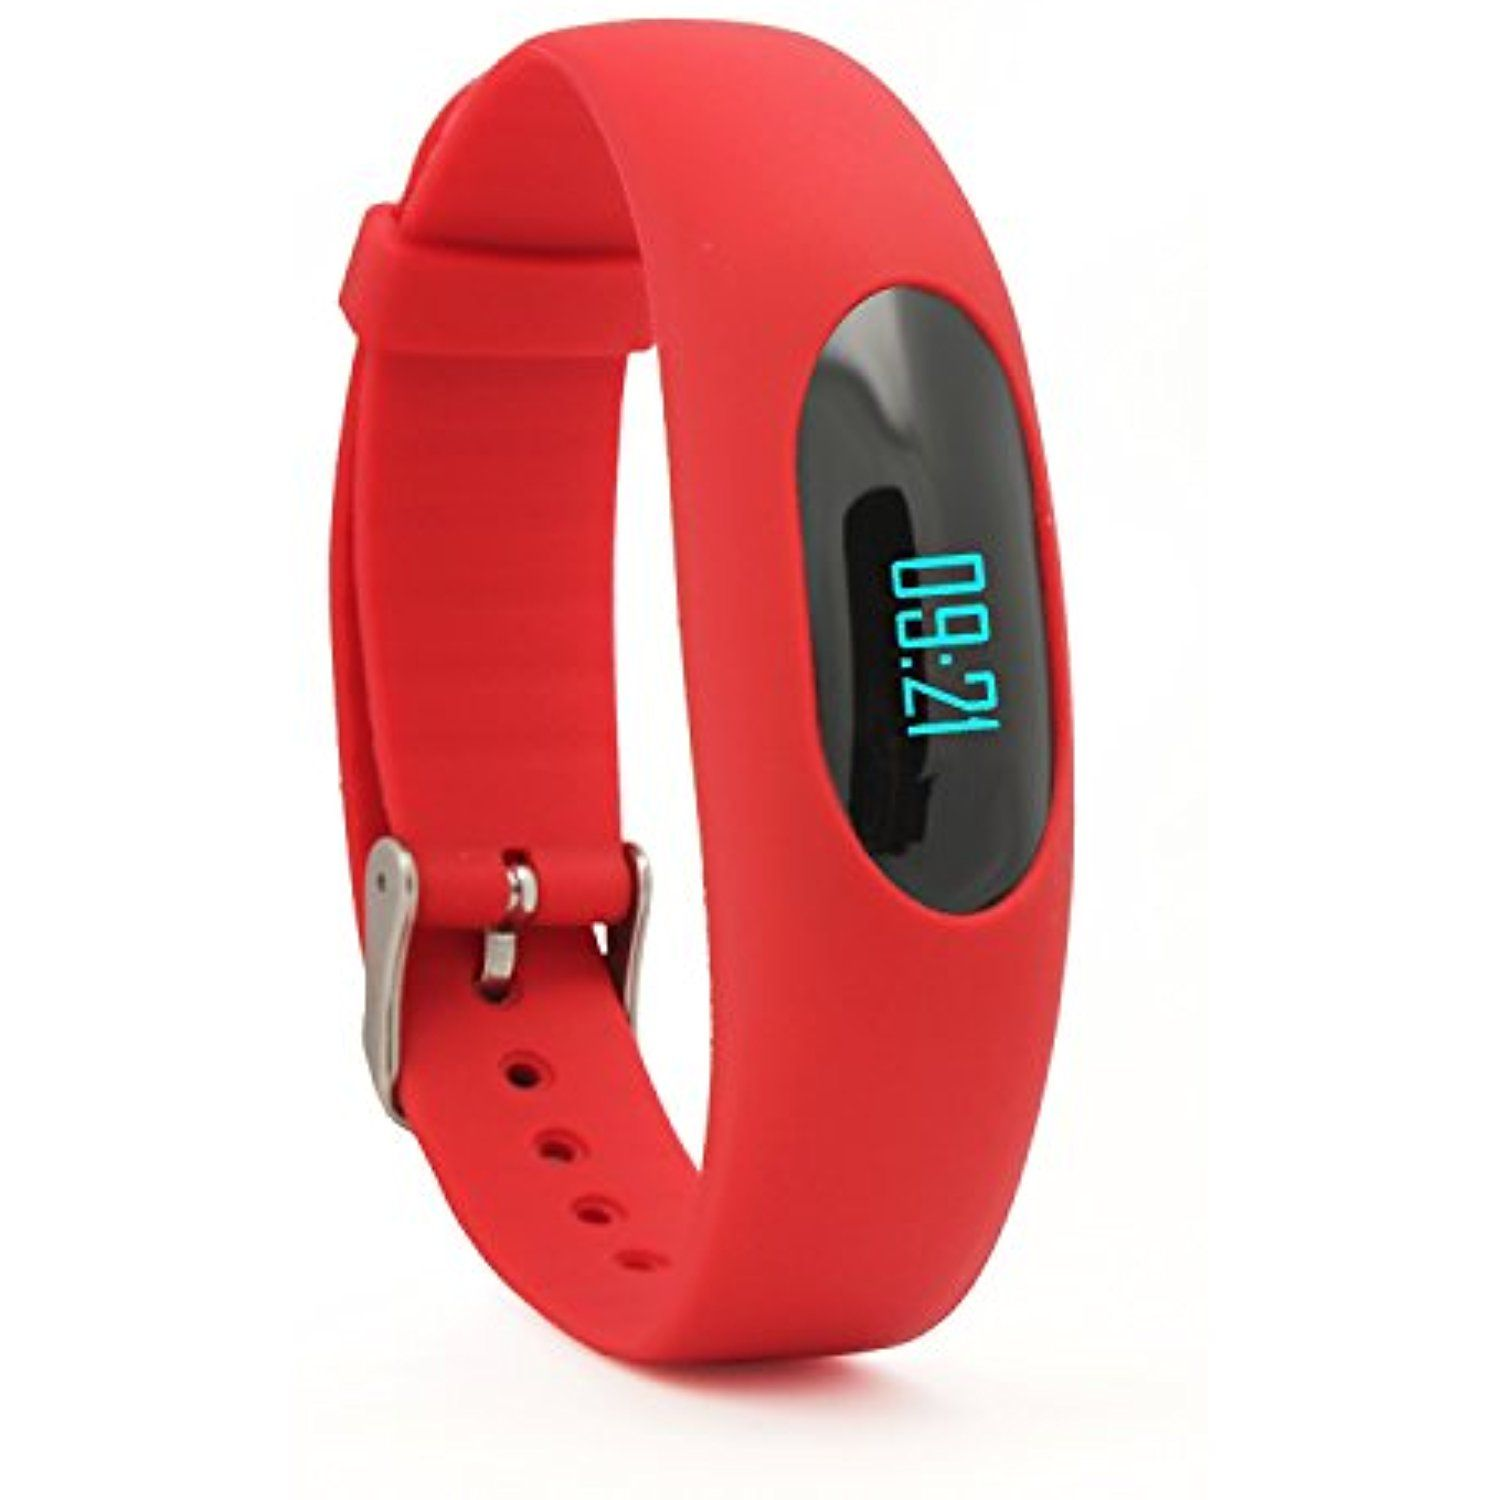 Steps Taken Distance Traveled and Activity Time SYNC Calorie Activity Tracker Captures Your Daily Calories Burned